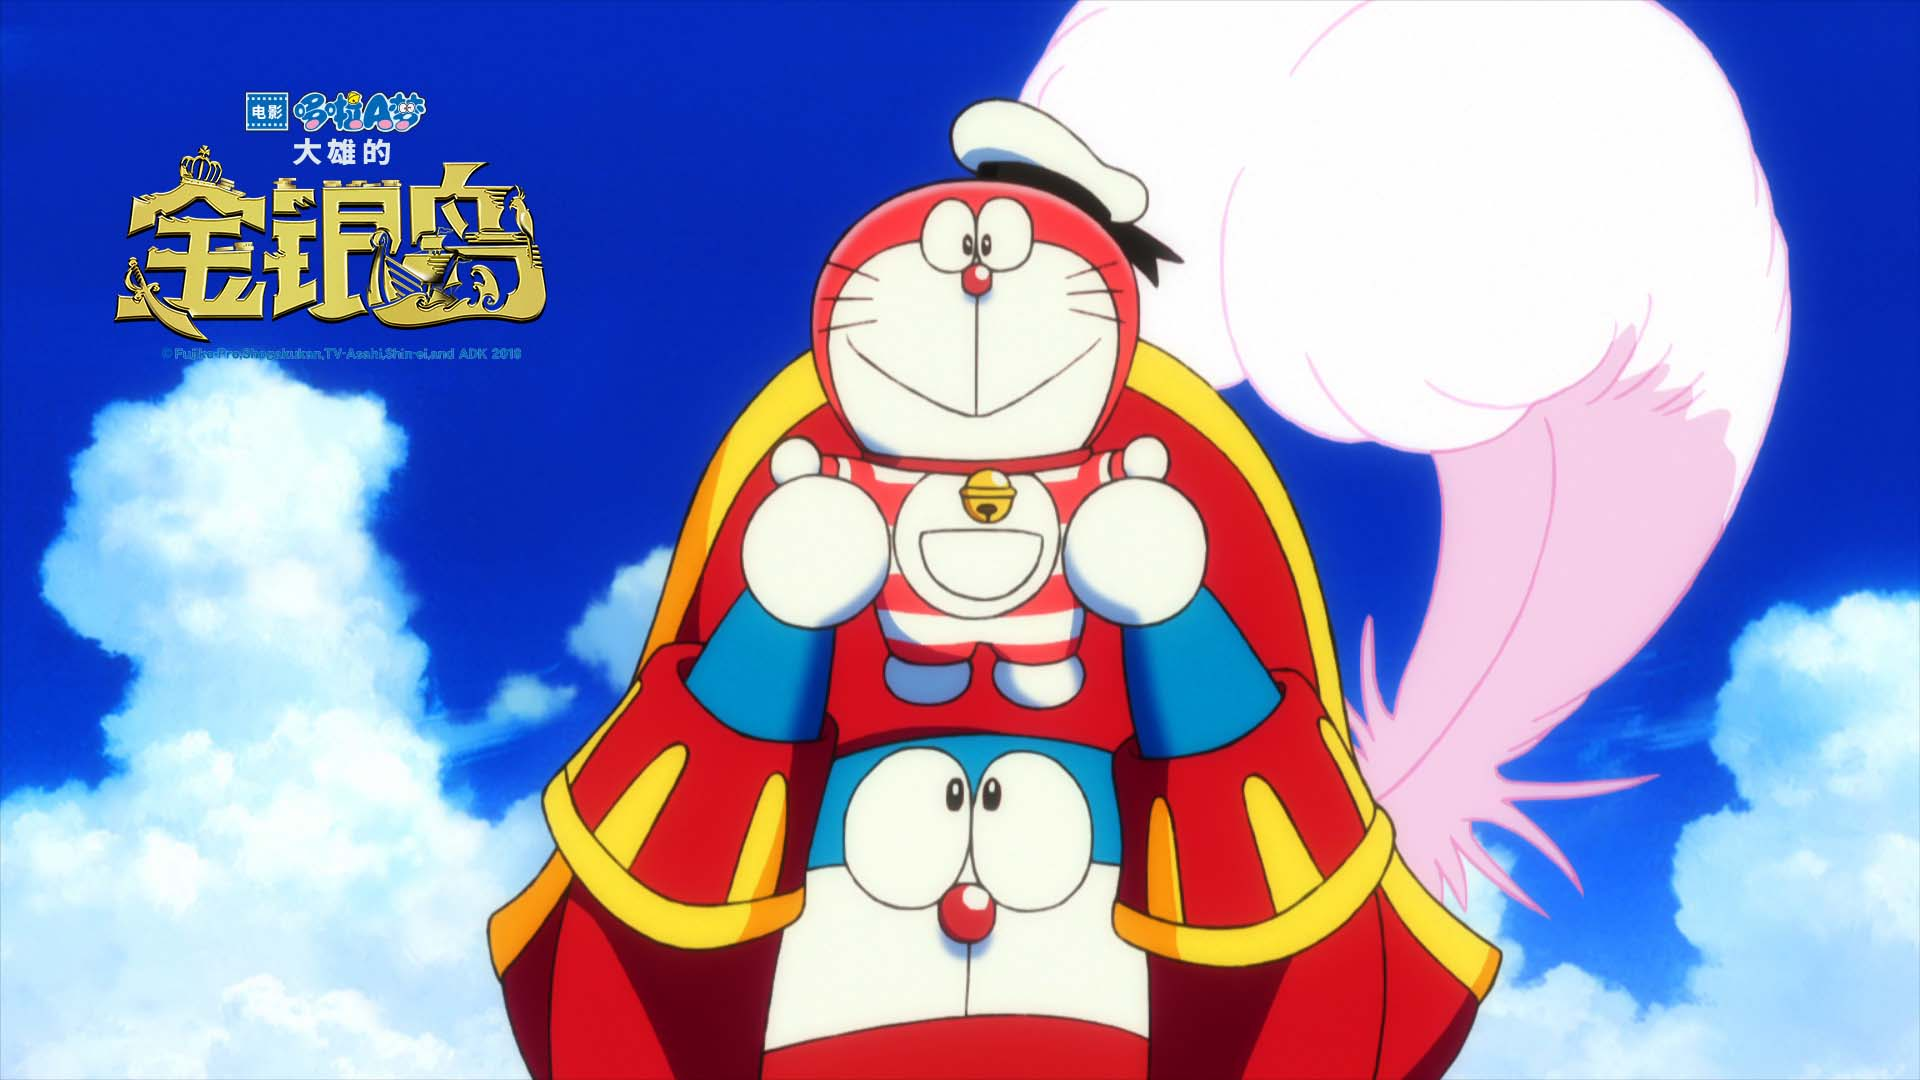 Dream A Dream: Nobita's TreasureIsland' released the ultimate notice that the beetle's return will be a dedication to Doraemon again.